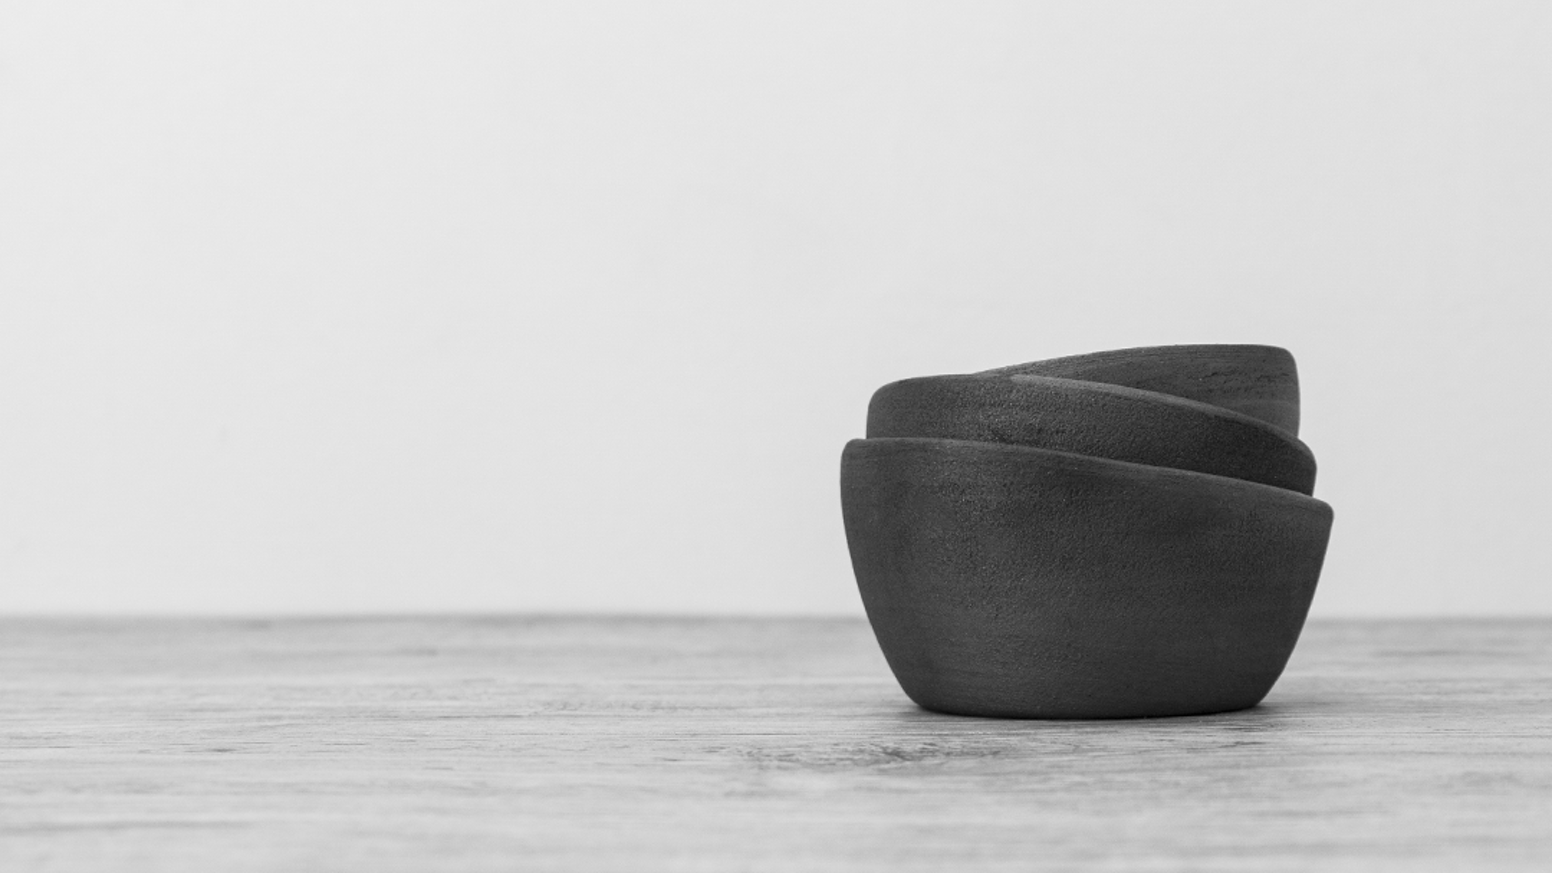 Join us in saving the dying art of Portuguese Black Ceramic. Follow us on instagram @pretoceramic